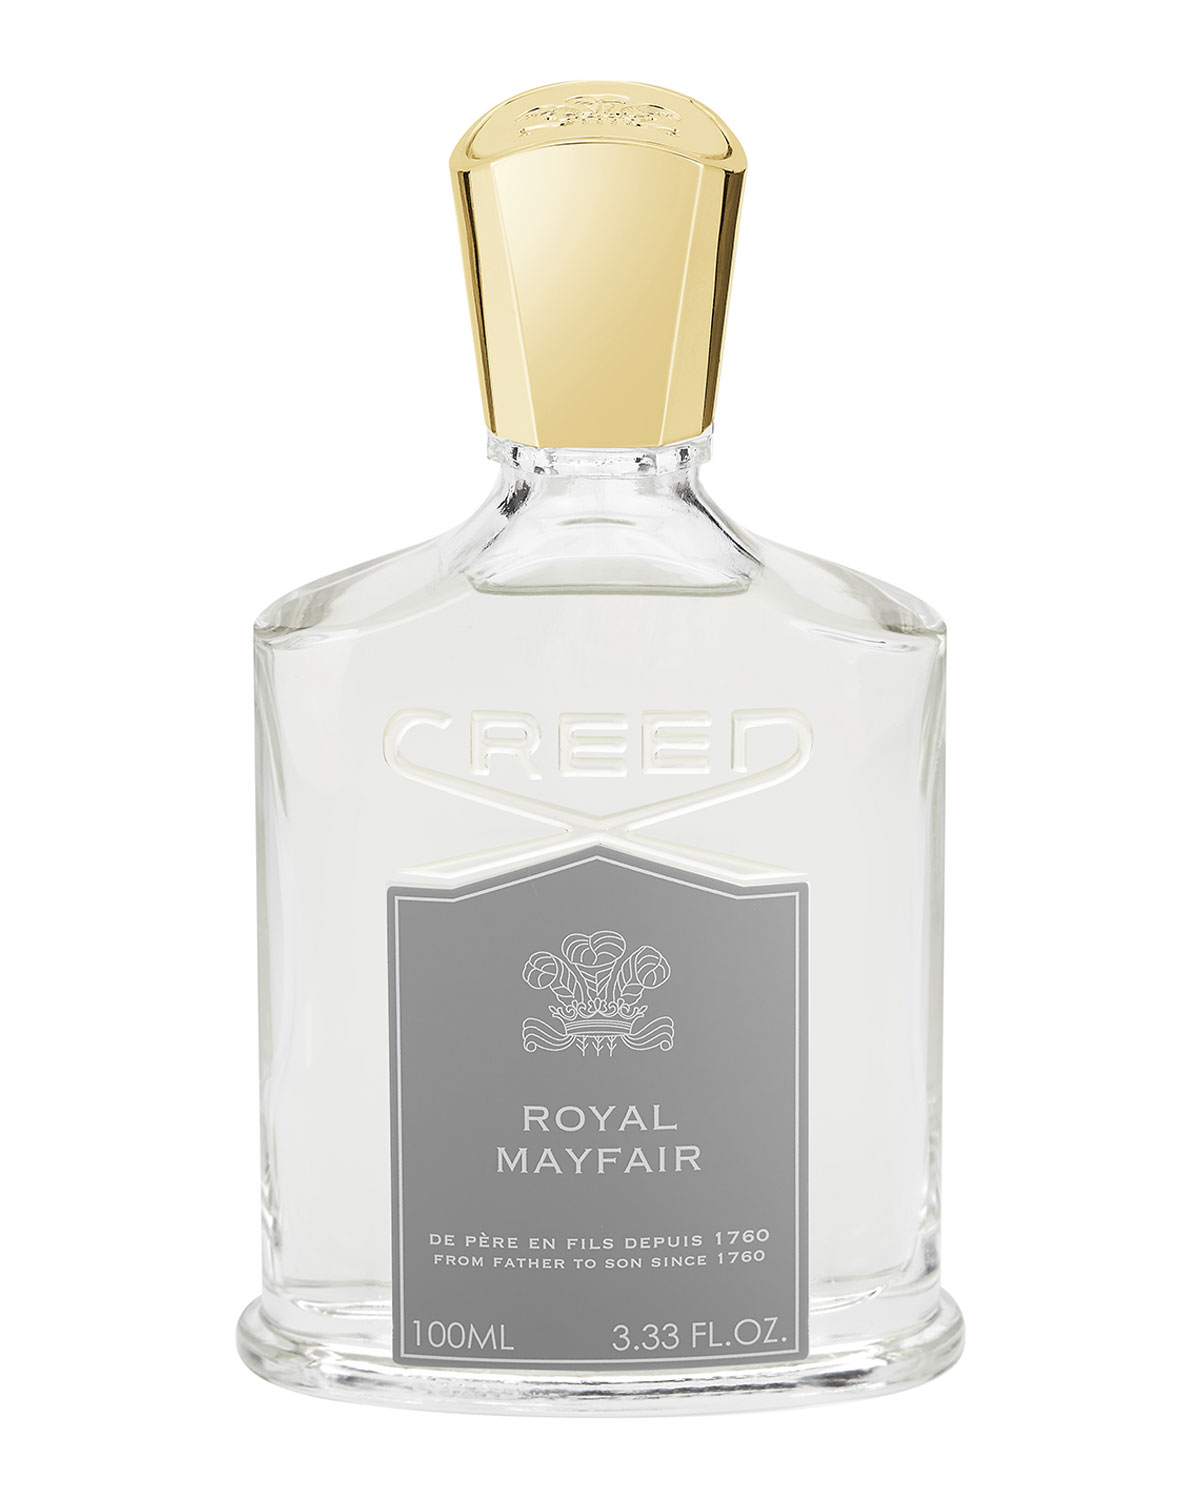 Royal Mayfair Eau De Parfum, 3.3 Oz./ 100 M L by Creed